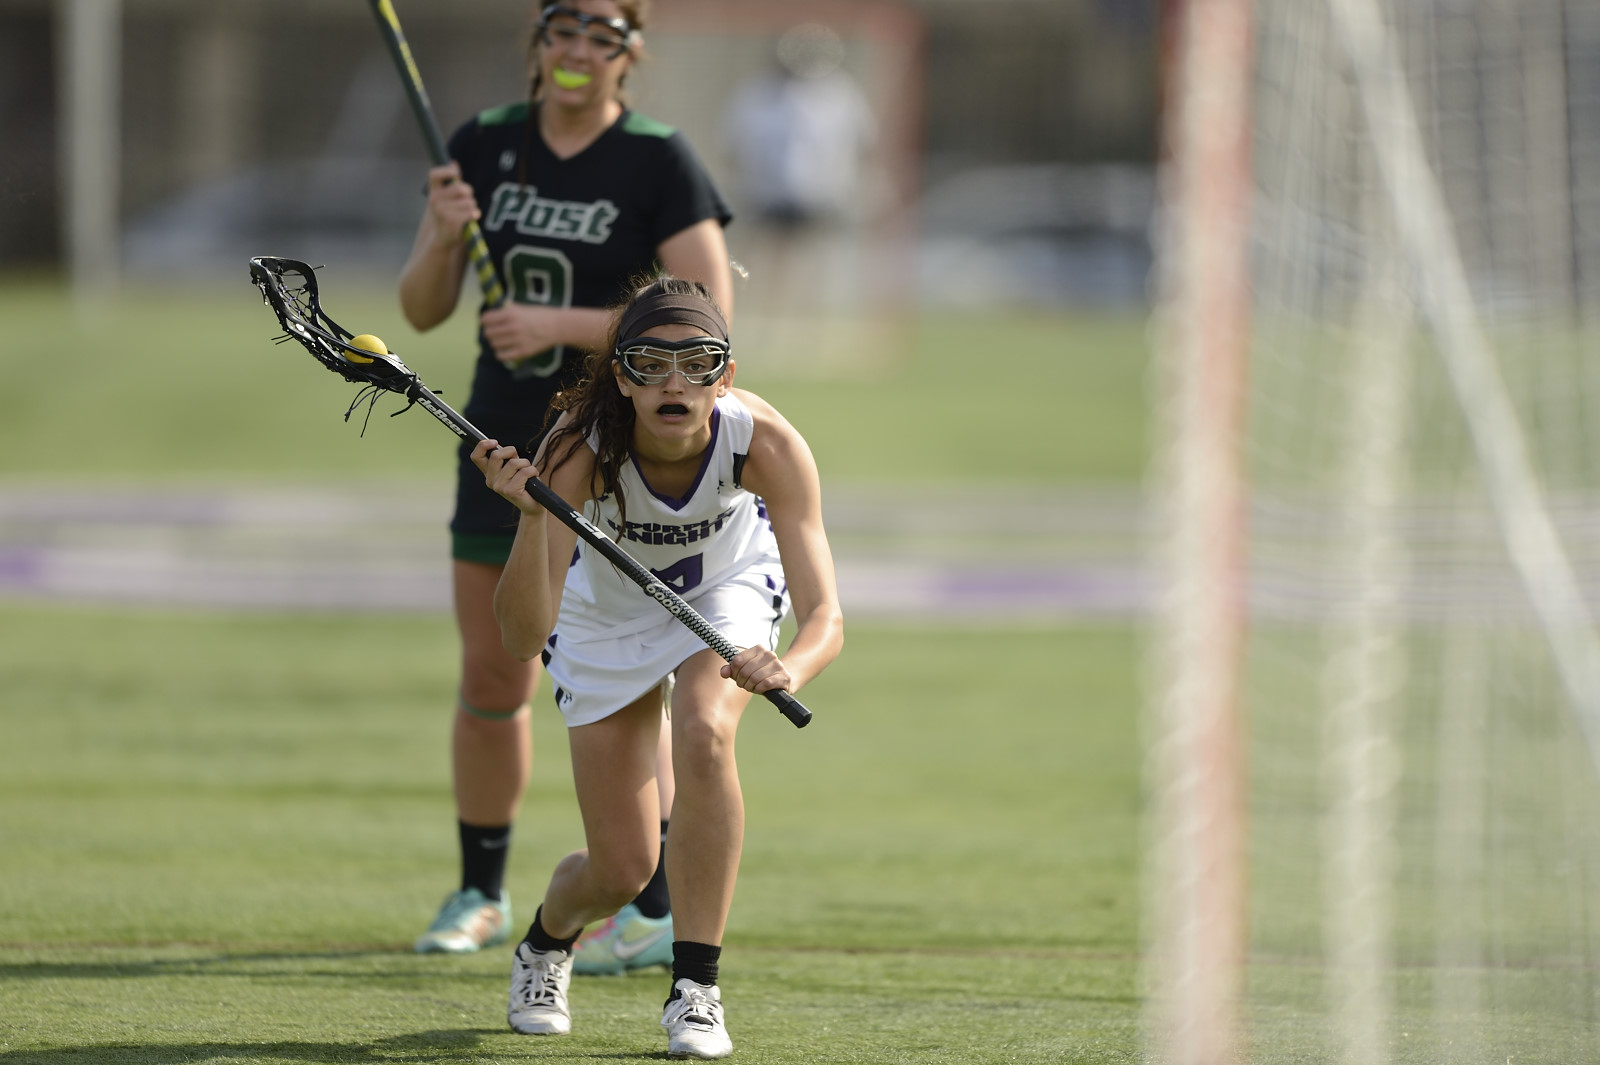 Bridgeport Women's Lacrosse Nets A Season-High 19 Goals In Home Win Over Dominican (N.Y.) College